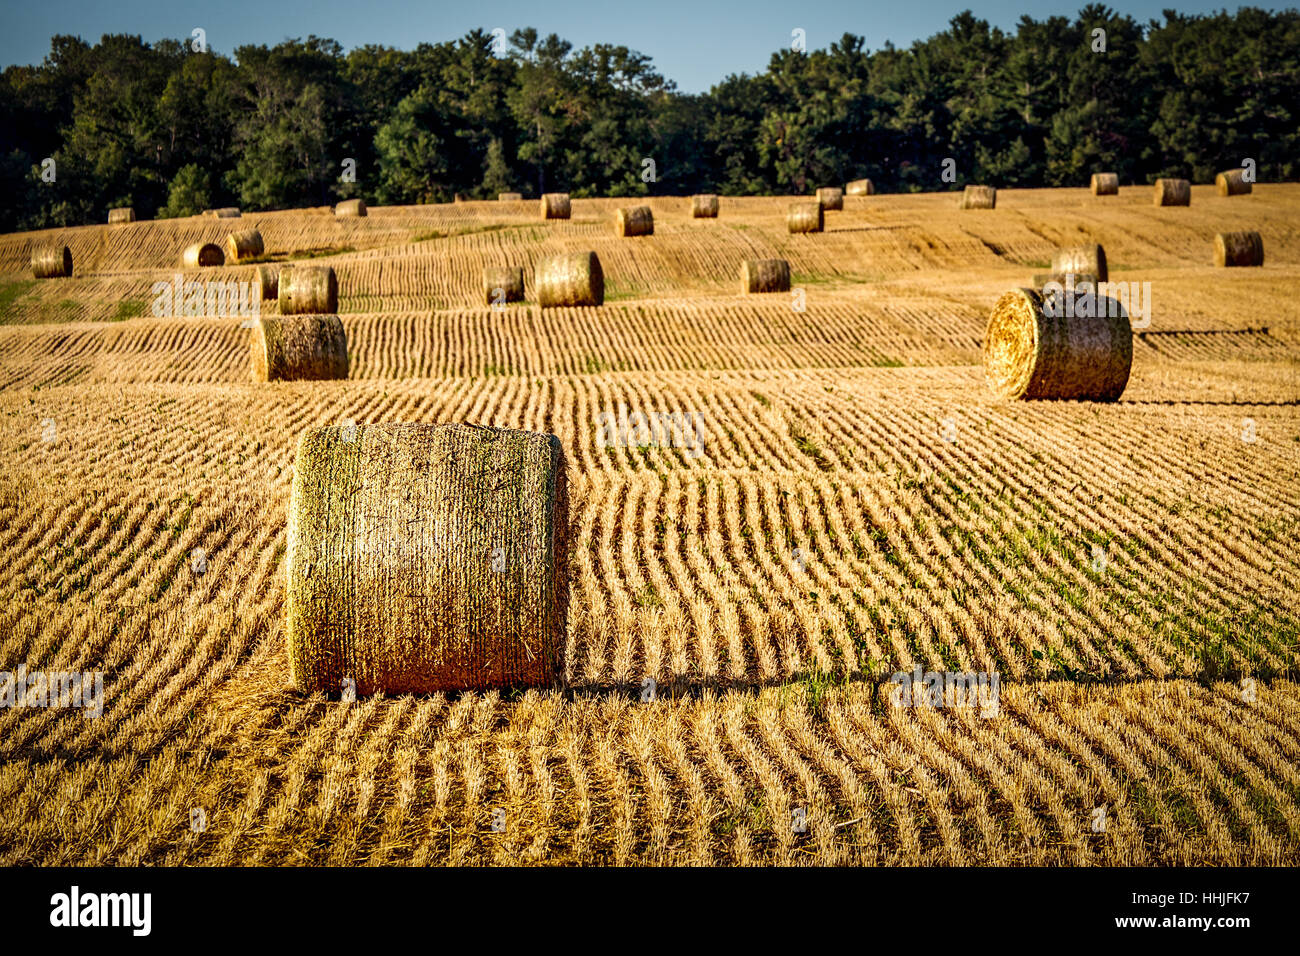 Hay In The Farm Fields Of Manitowoc County Wisconsin Stock Photo ...